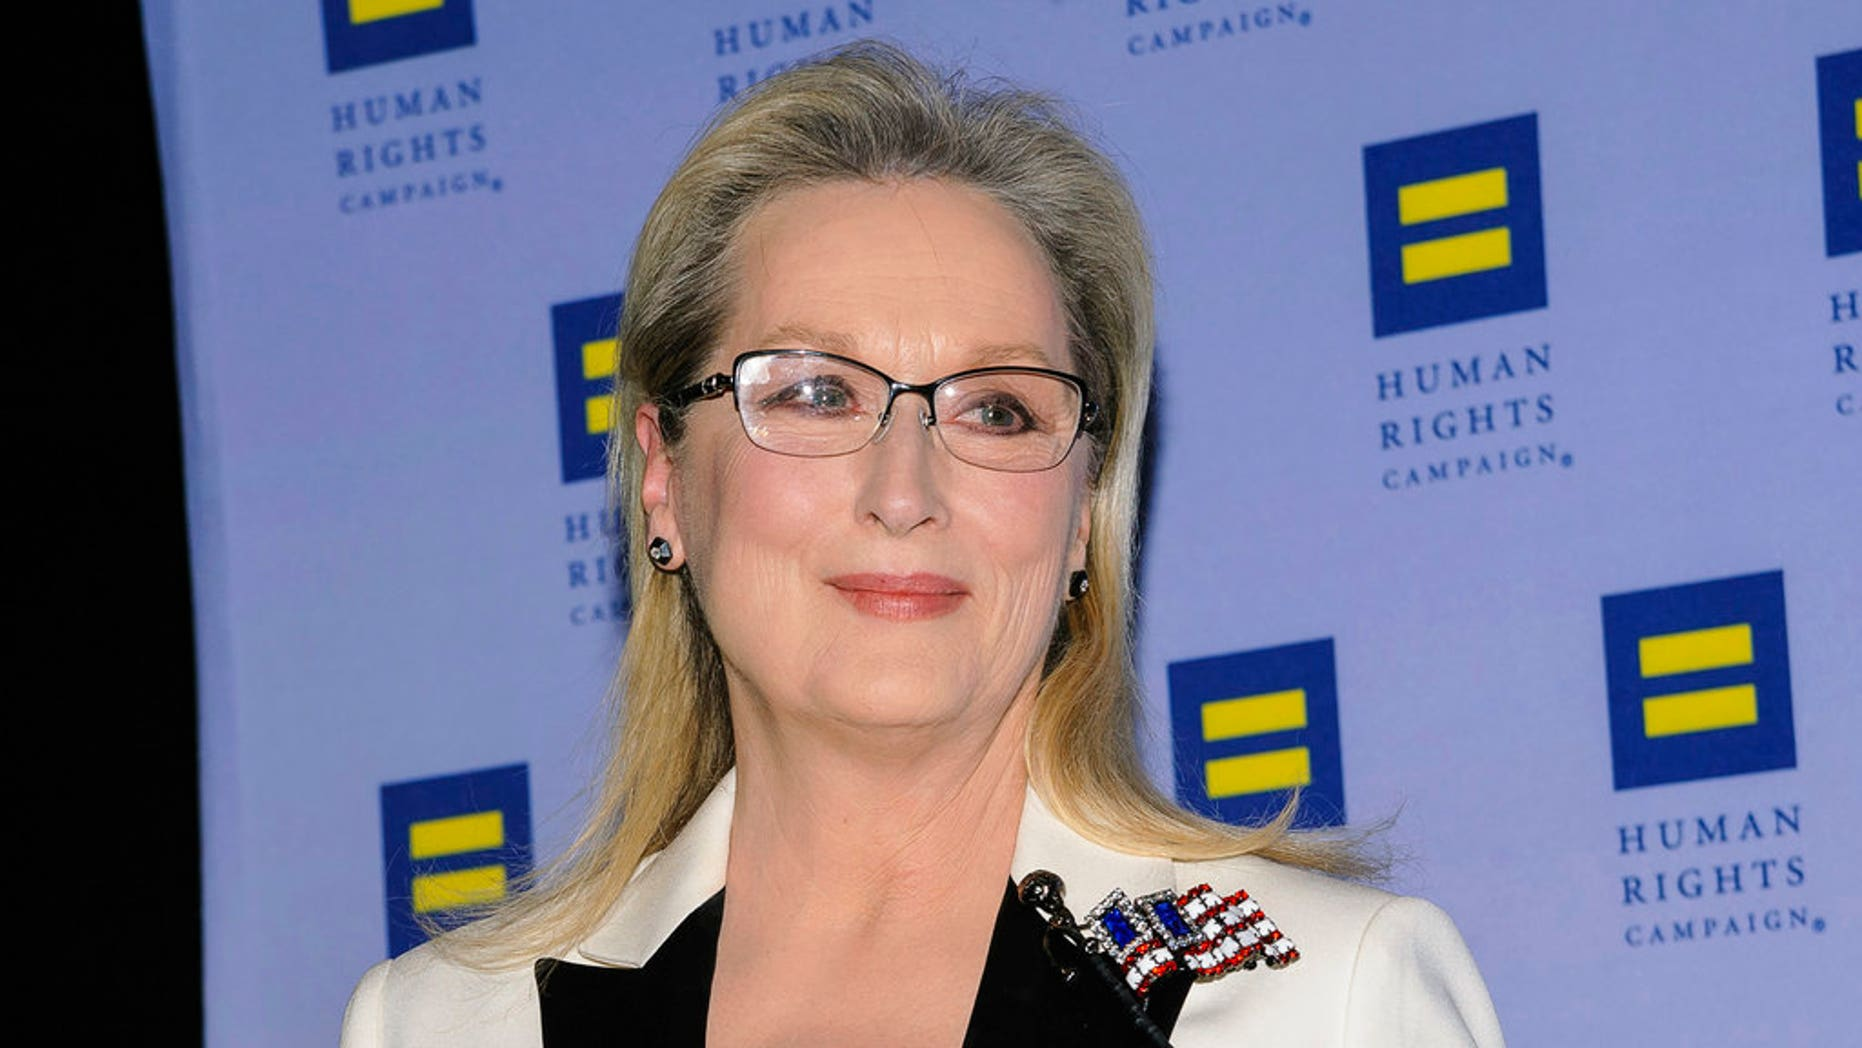 """In an interview with The New York Times, Meryl Streep called out Melania and Ivanka Trump for their """"silence"""" on sexual misconduct allegations."""